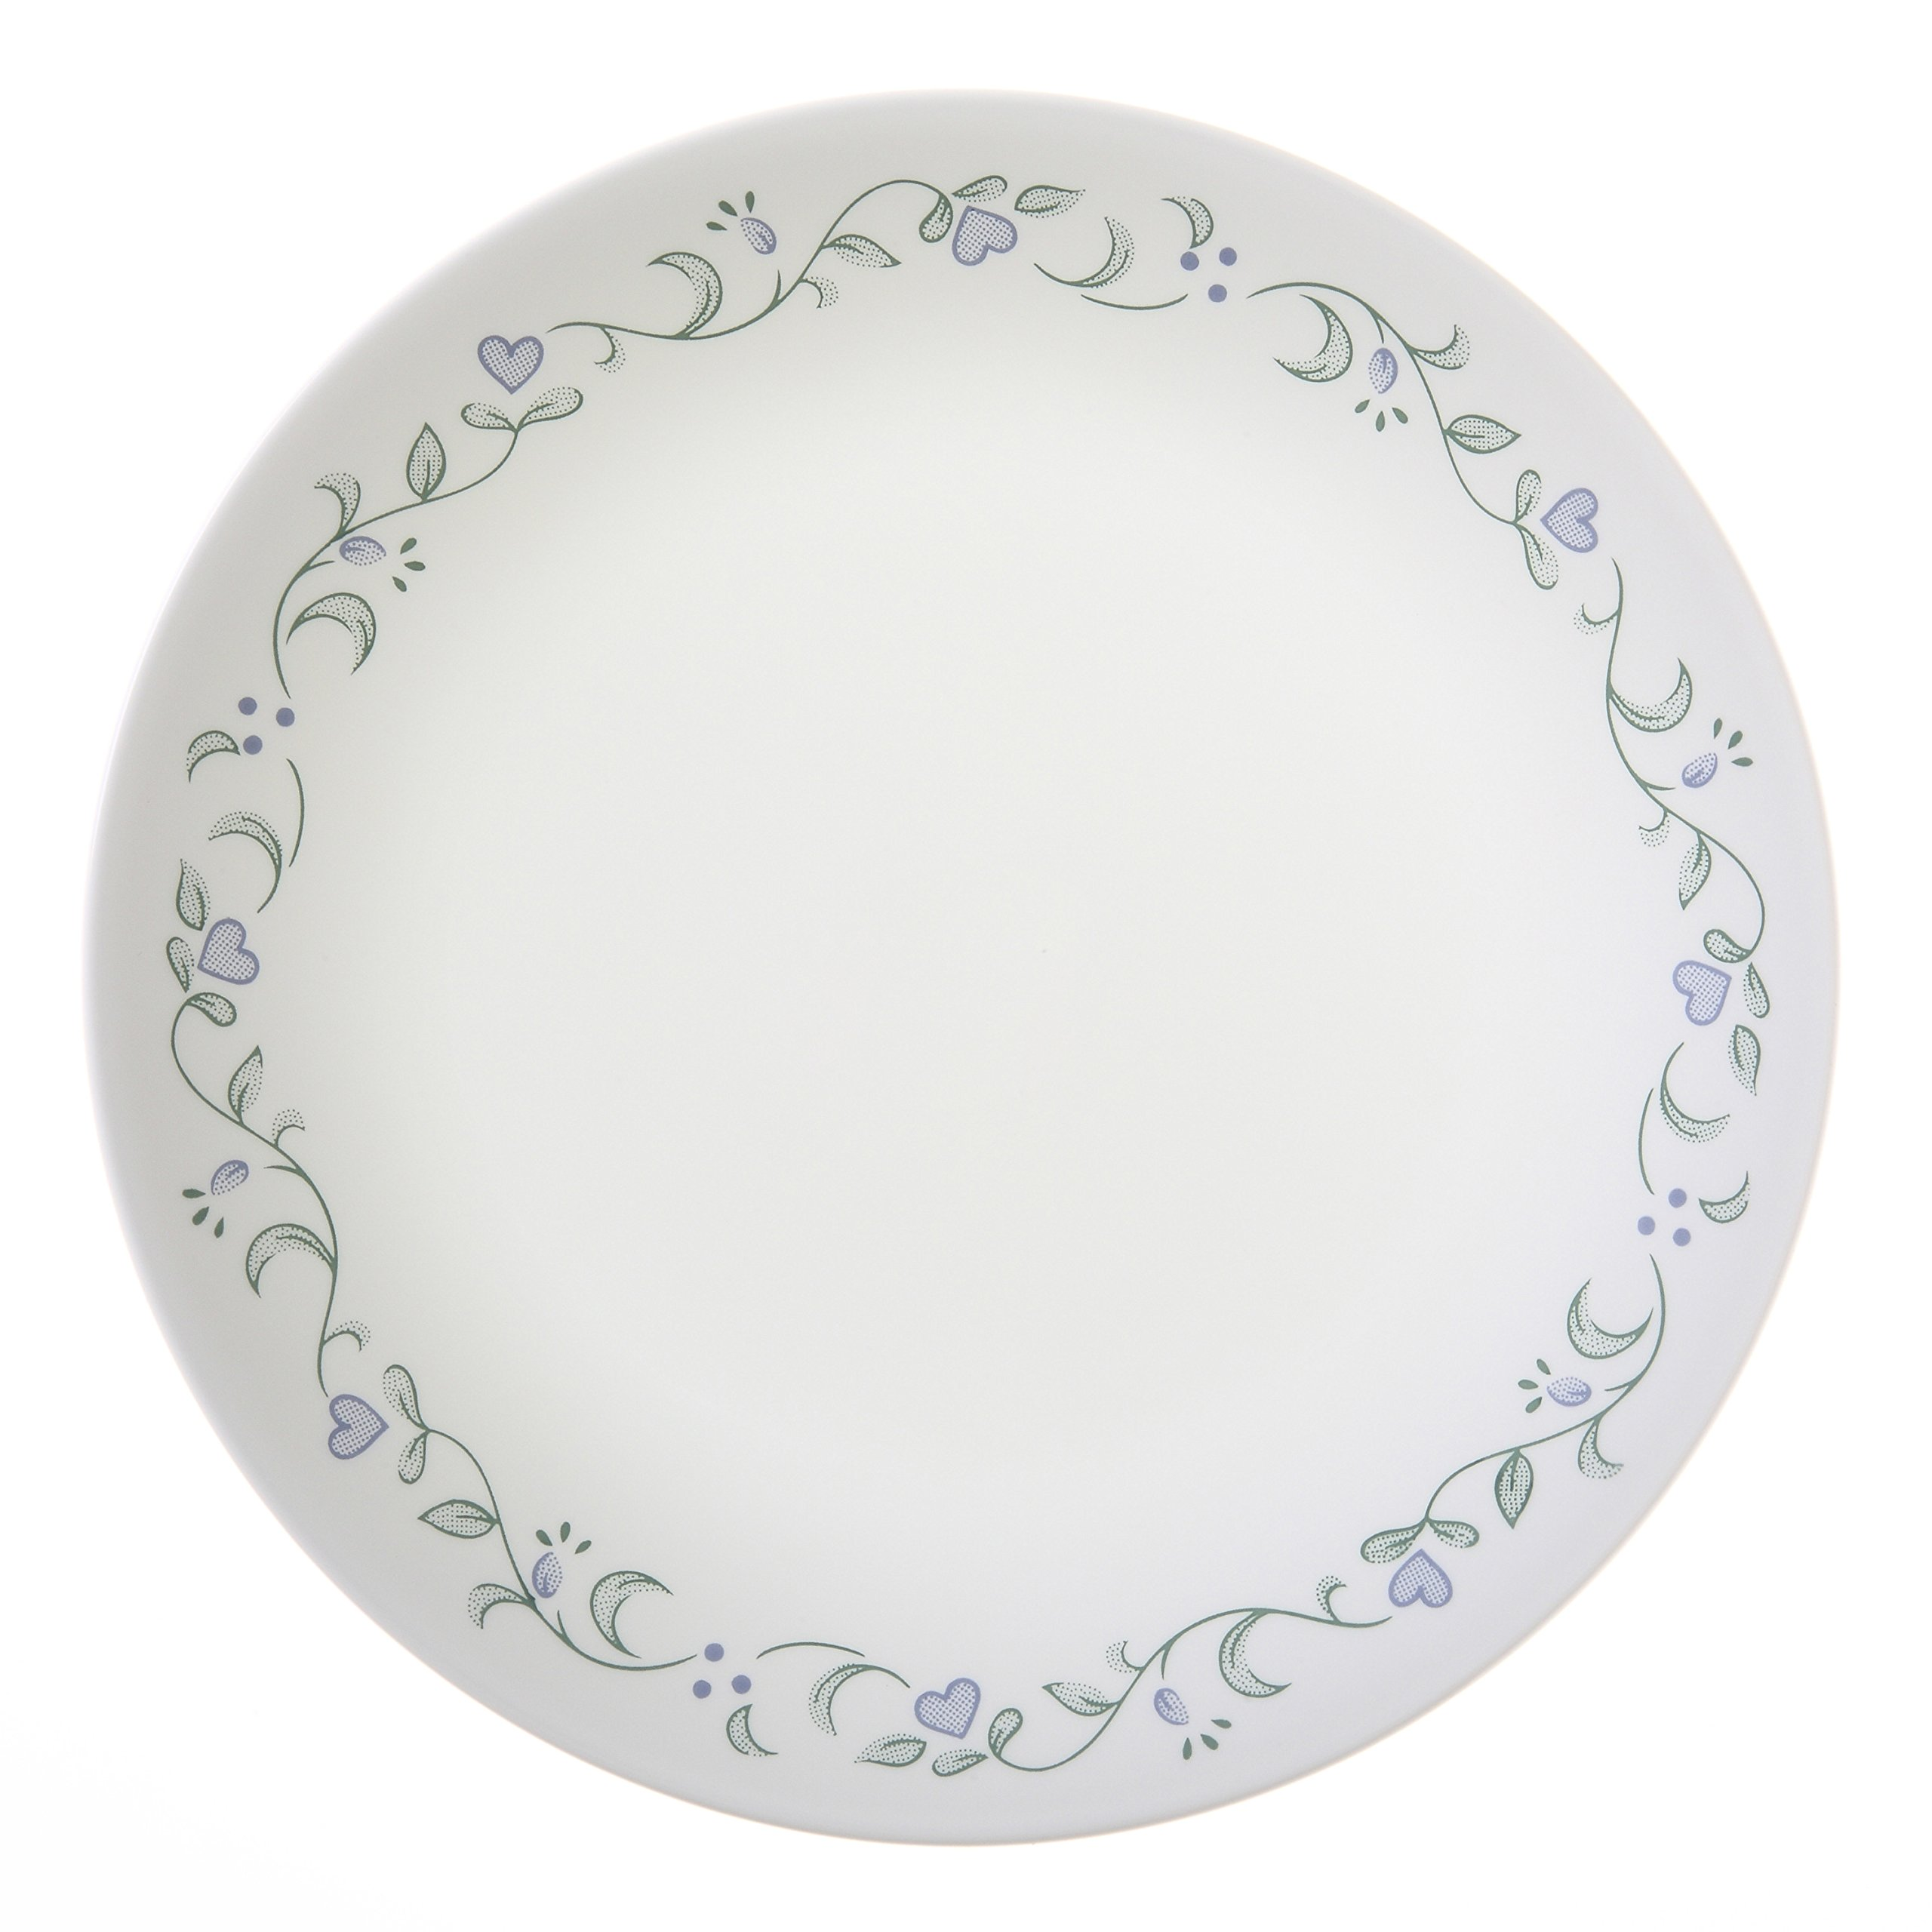 exceptional Corelle Luncheon Plates Open Stock Part - 12: Corelle Livingware Luncheon Plate, 8-1-2-Inch, White, Set of 6